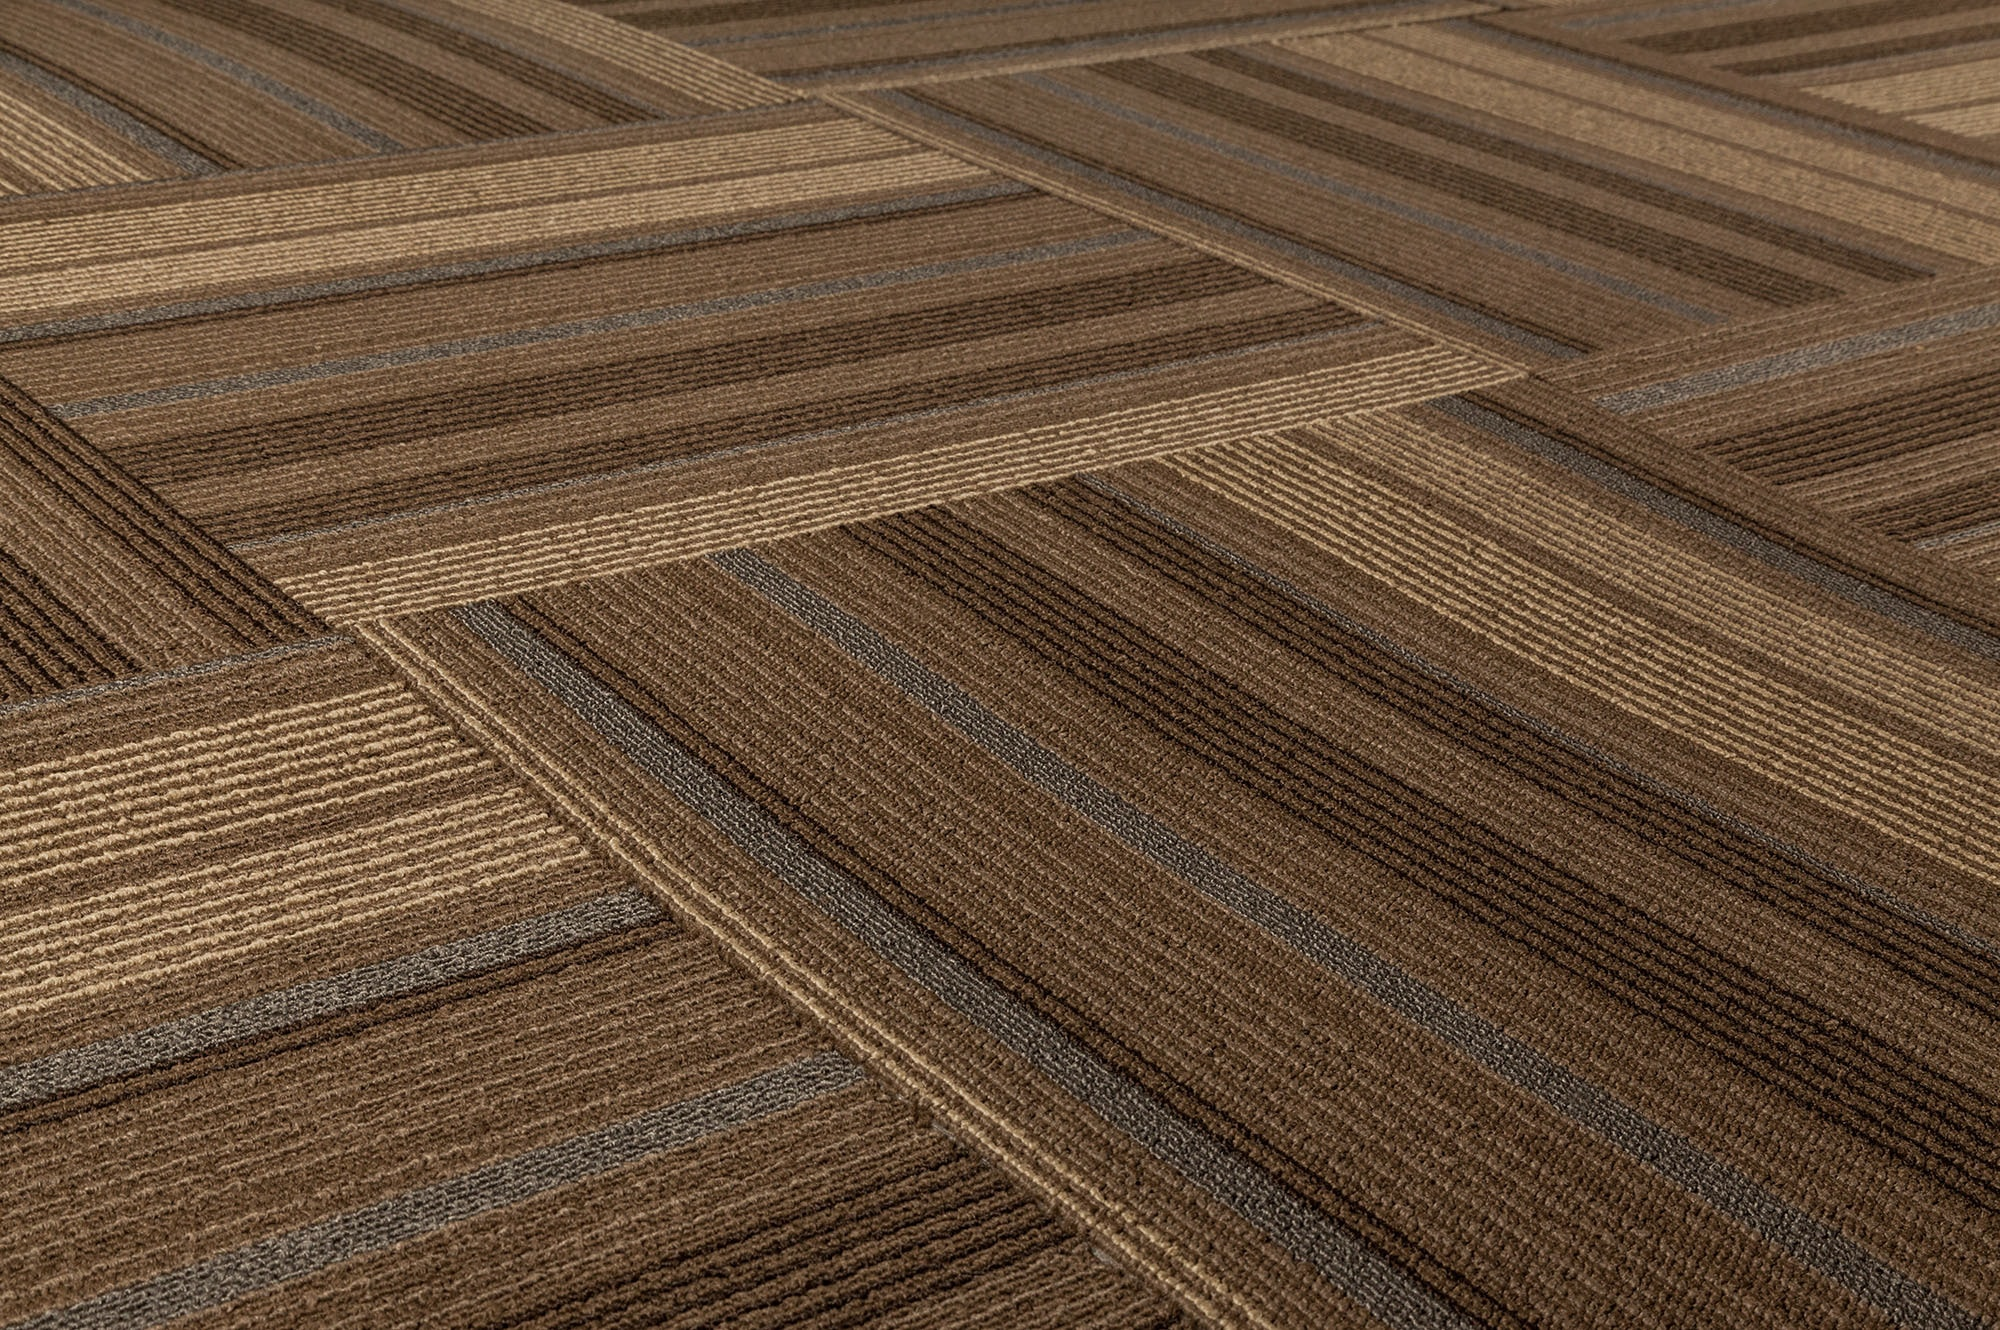 7548 23RI Sizzling Brown further Vinyl Floor Tiles Uk Marley also Mosque Carpet Texture furthermore Large Outdoor Carpet Images together with Square Pattern Rug. on carpet squares rug